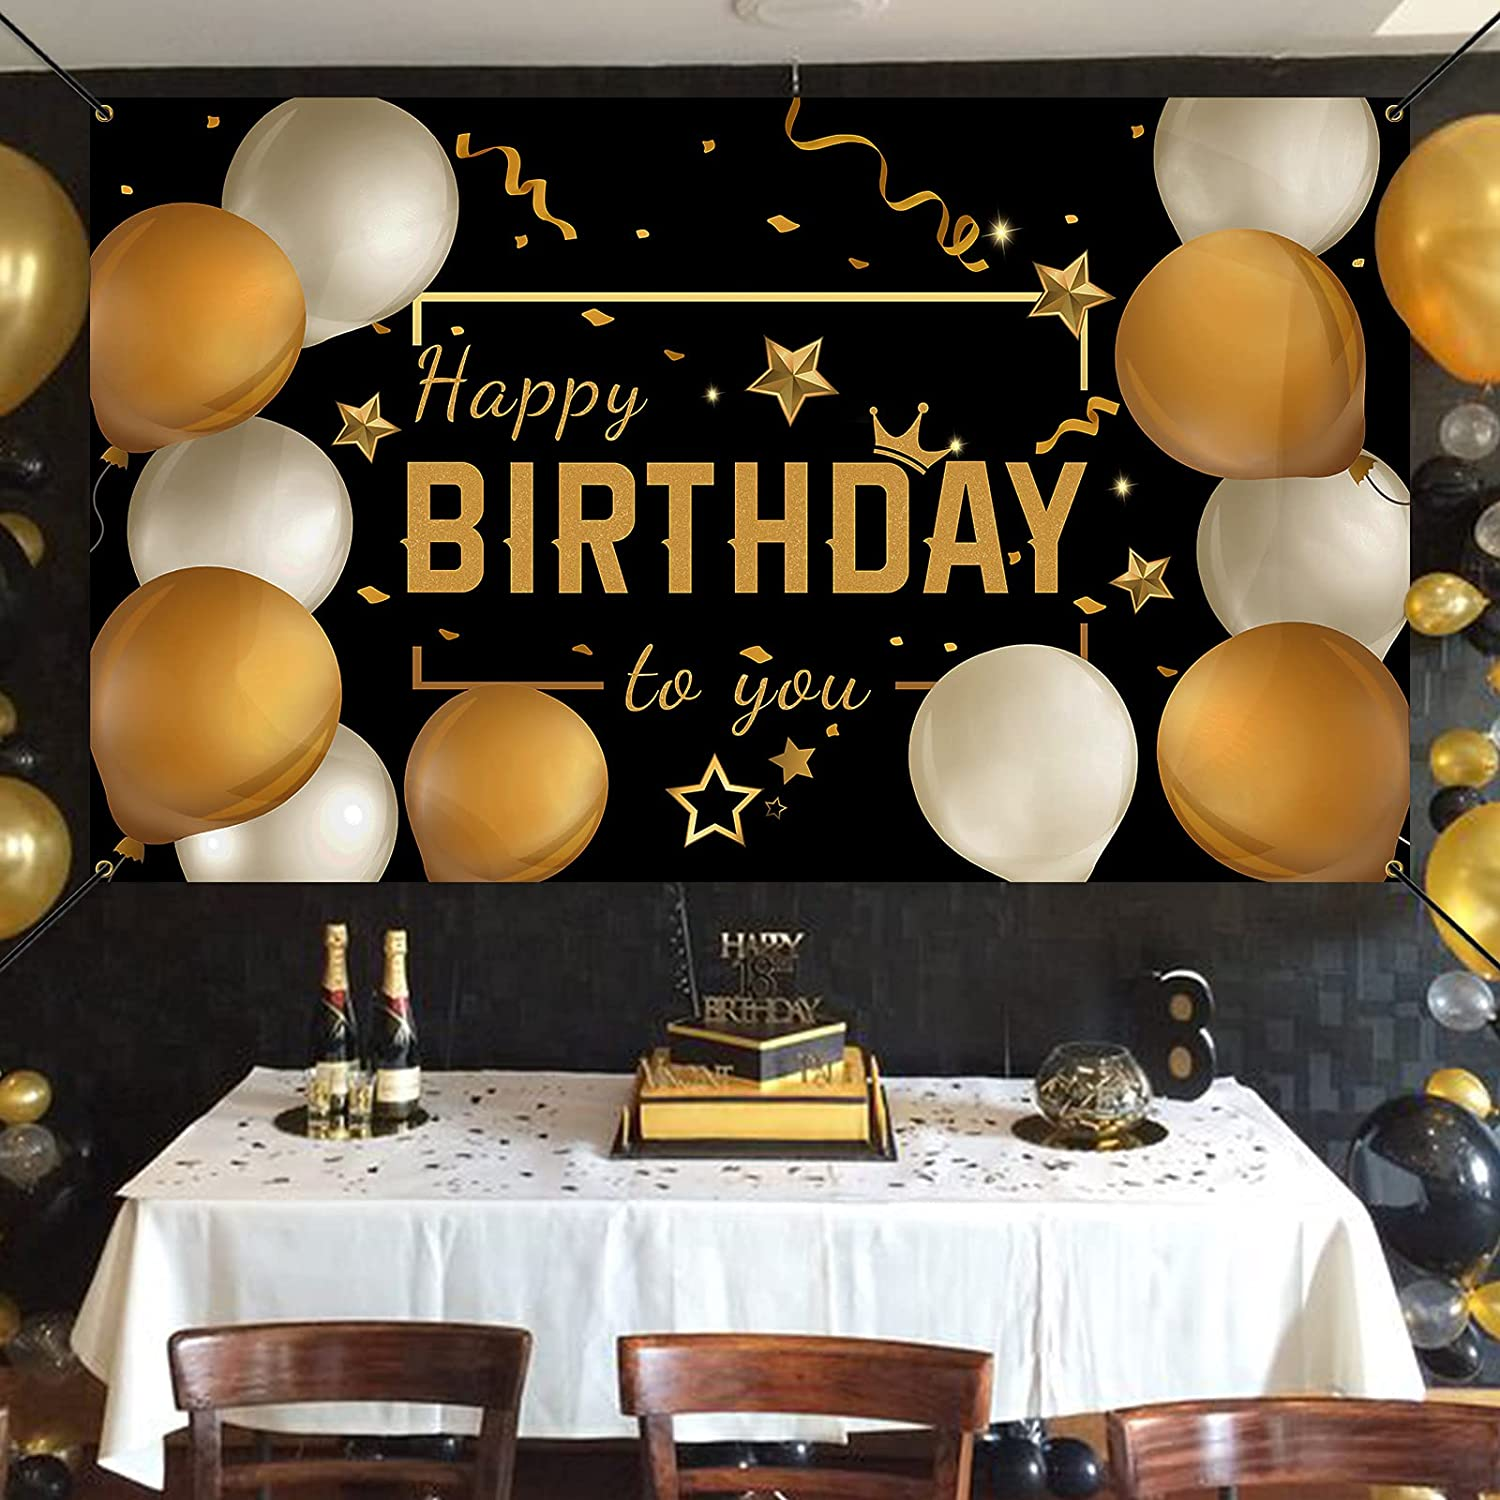 Black Gold 73 x 43 Balloons Birthday Signs Decor for Men Women Bunny Chorus Happy Birthday Backdrop Banner Decorations for Party Supplies